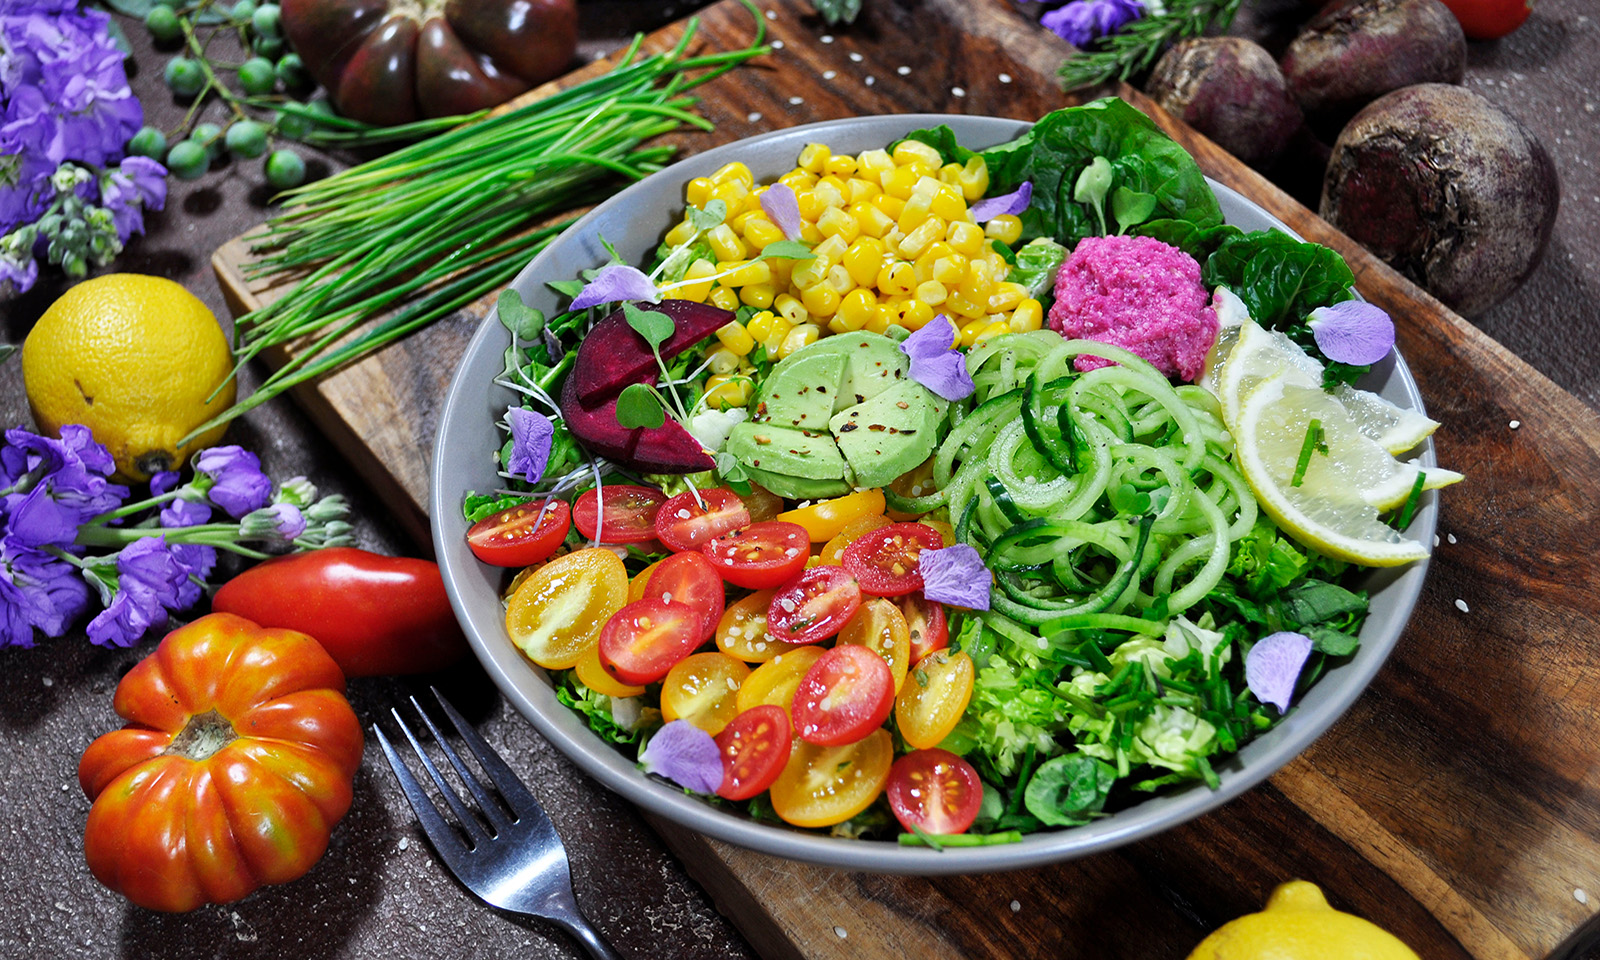 cooking-methods-that-can-harm-your-health-main-image-delicious-vegan-food-in-skillet